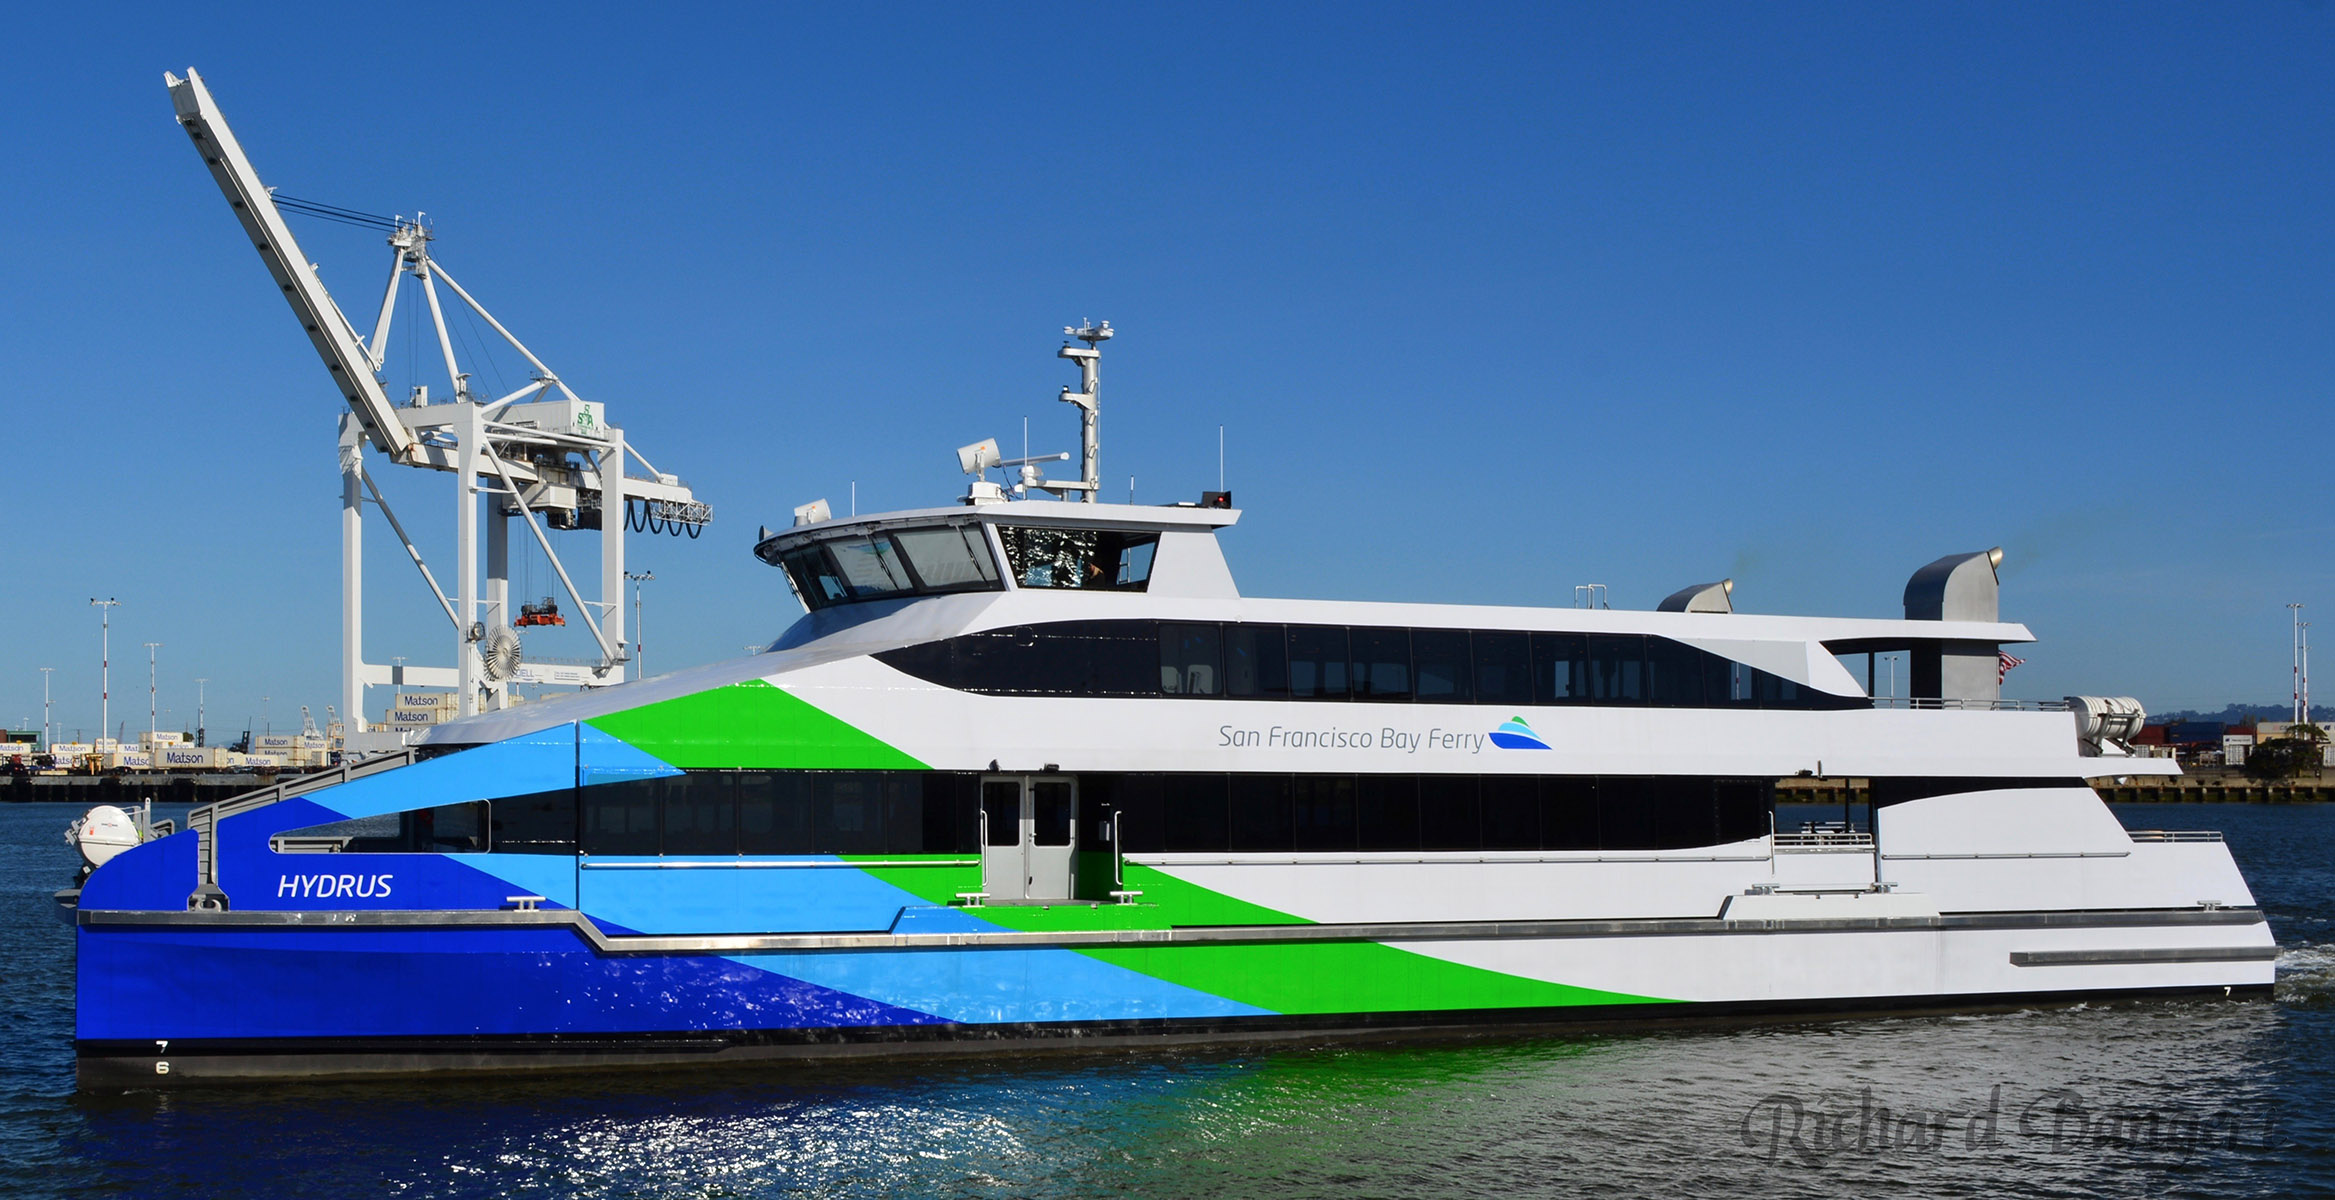 Richard Bangert  MV Hydrus ferry during training exercises in the Oakland Estuary March 28. The Hydrus is scheduled to begin service from the Main Street Terminal and Jack London Square to San Francisco in the next couple of weeks.